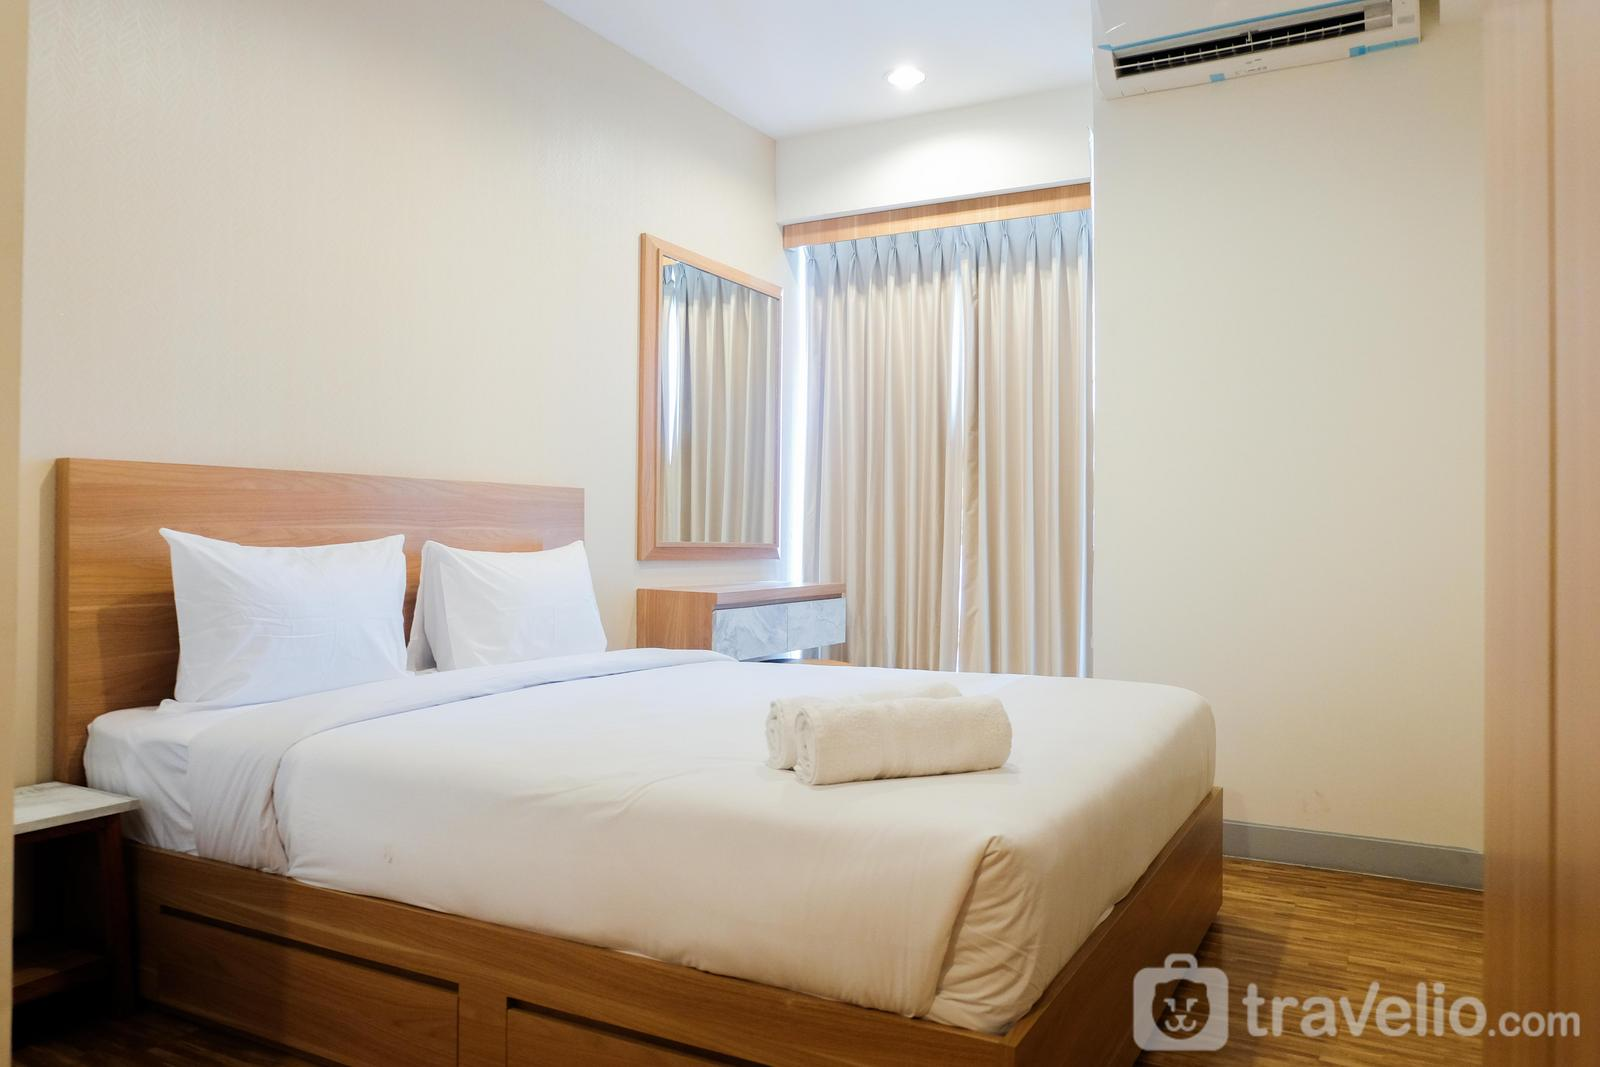 Grand Kamala Lagoon - Simply Modern Studio Grand Kamala Lagoon Apartment By Travelio